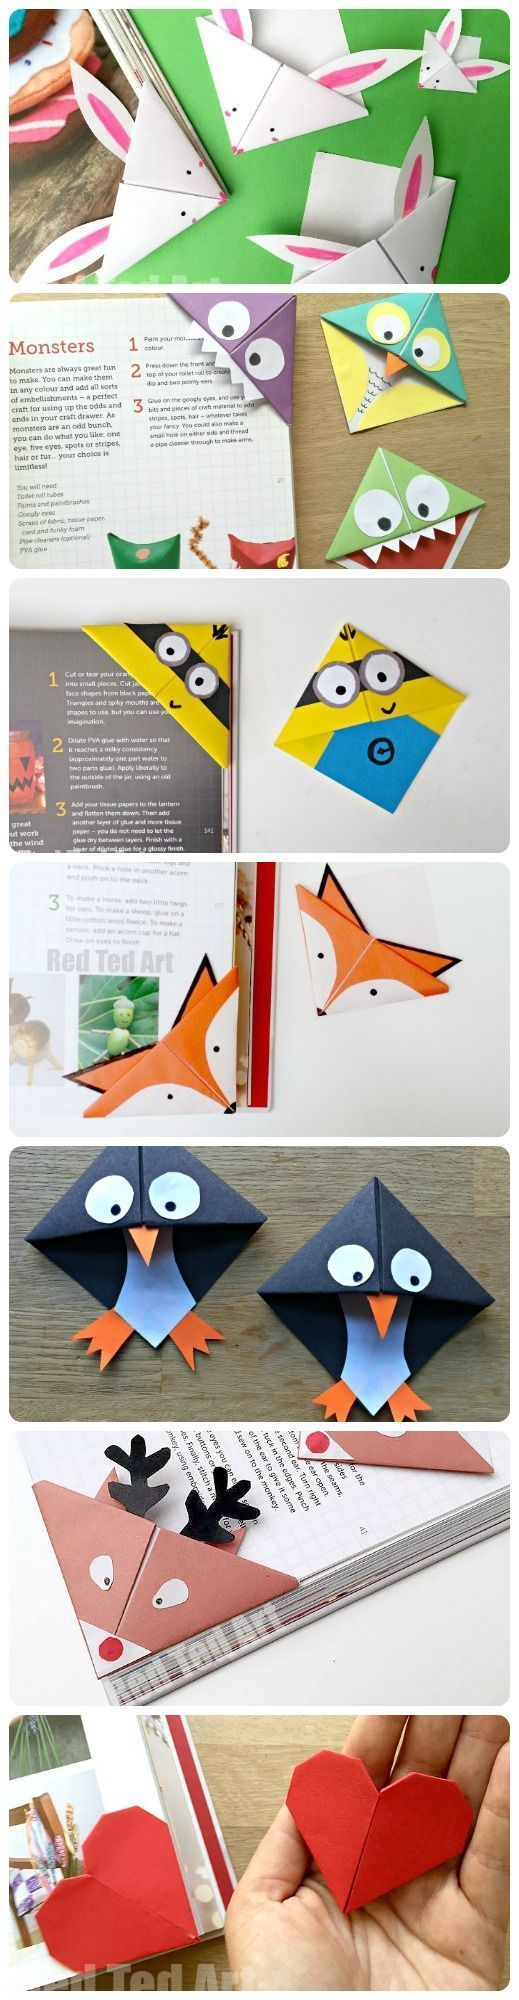 We adore making Bookmarks and these corner bookmarks are GREAT fun to make and give. So many different designs for all seasons - with more to come (check back regularly!!!!). From Bunny Bookmarks for Easter, to Minion Bookmarks for Minion fans. I adore the Monster version too. #artsandcraftsforkidswithpaper,